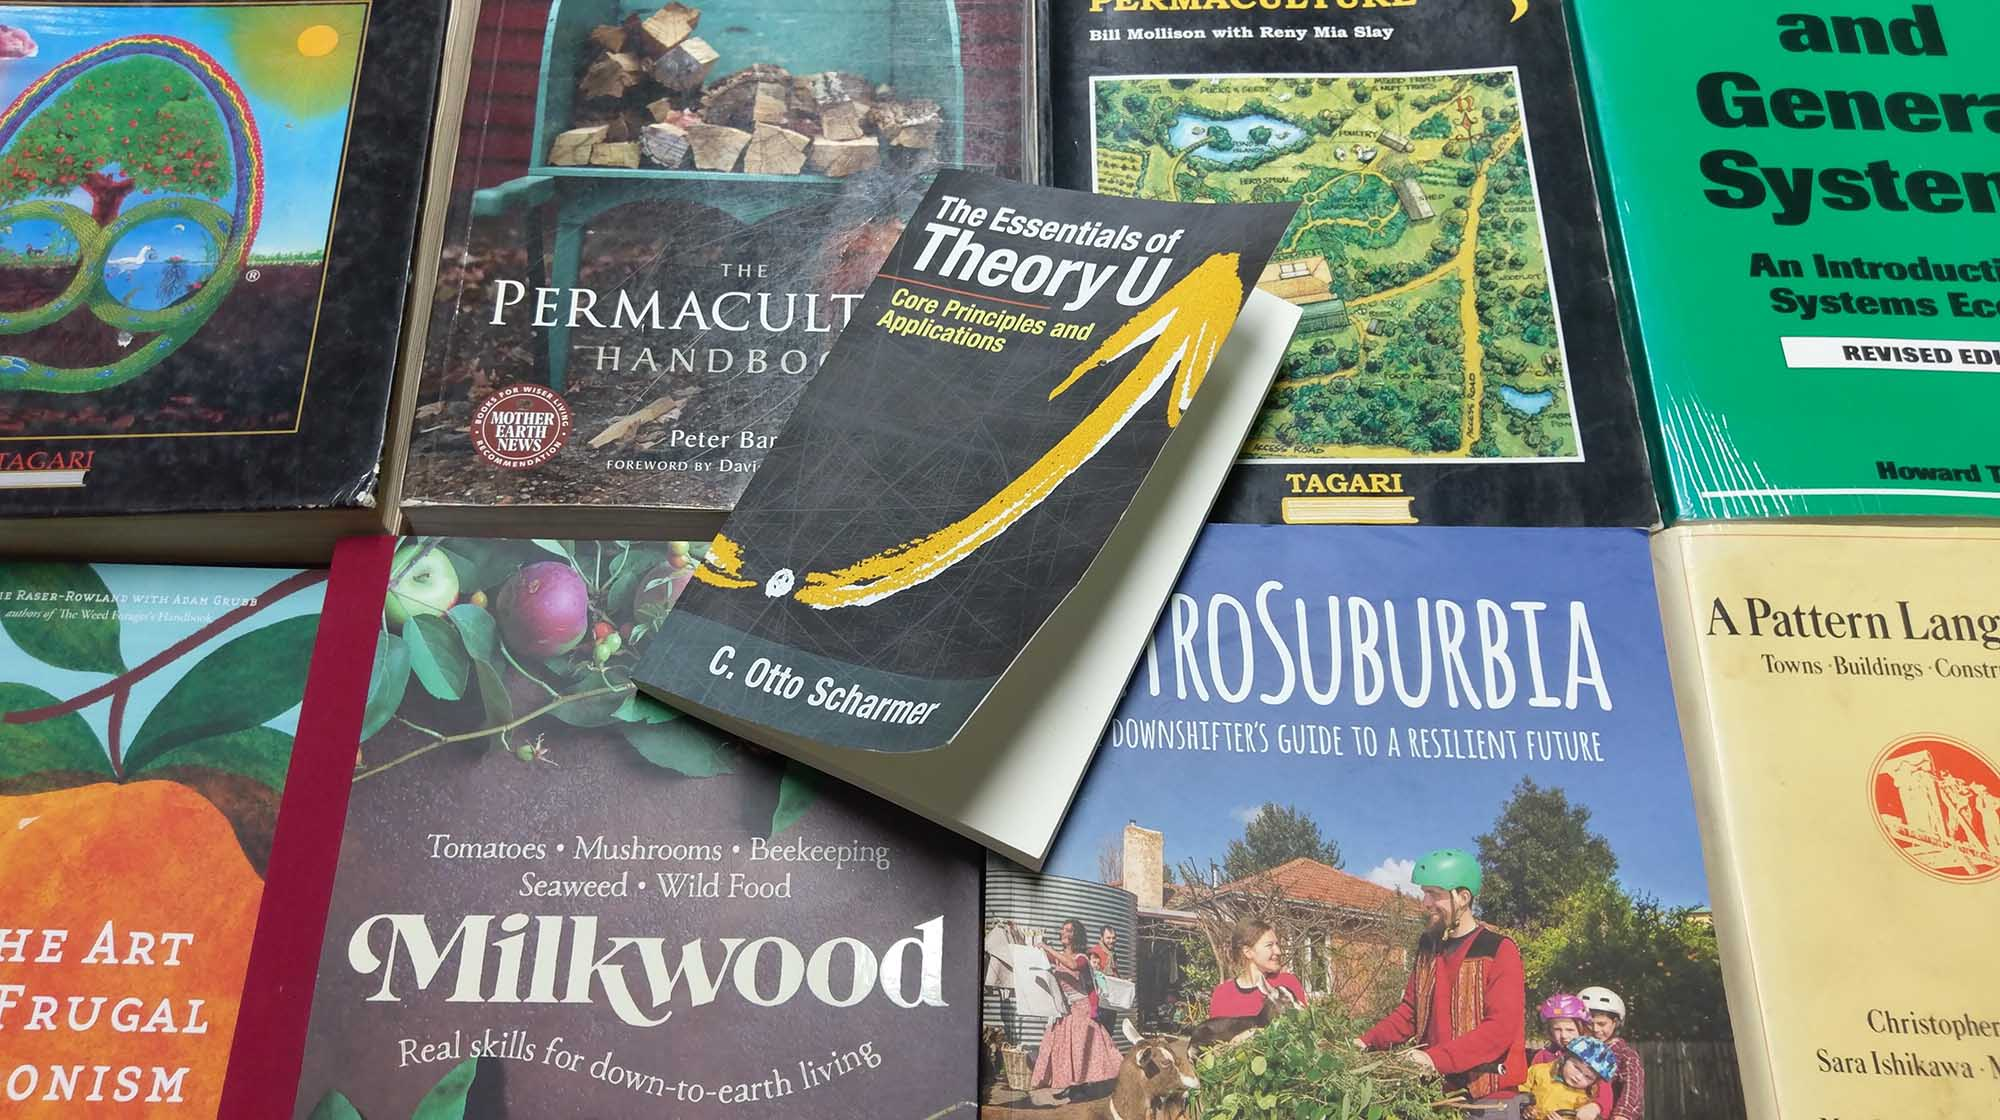 13th to 14th July 2019, PRPT Permaculture RetroSuburbia Pattern Language and Theory U Course